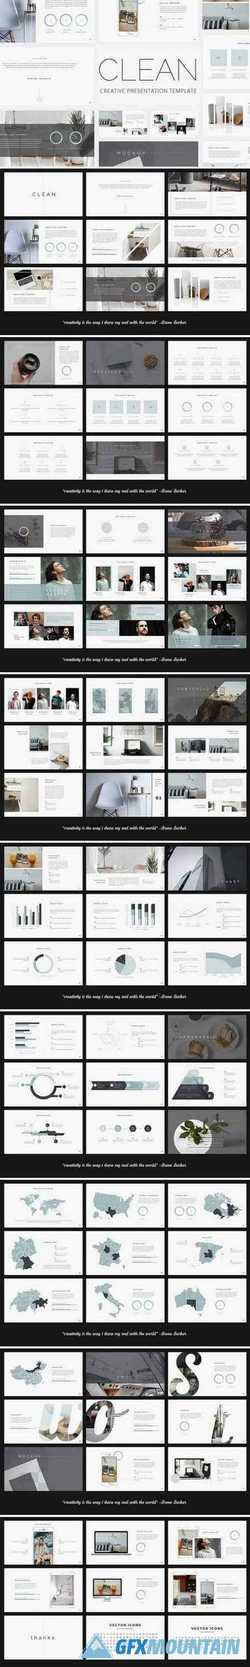 Clean - Creative PowerPoint Template 2458663